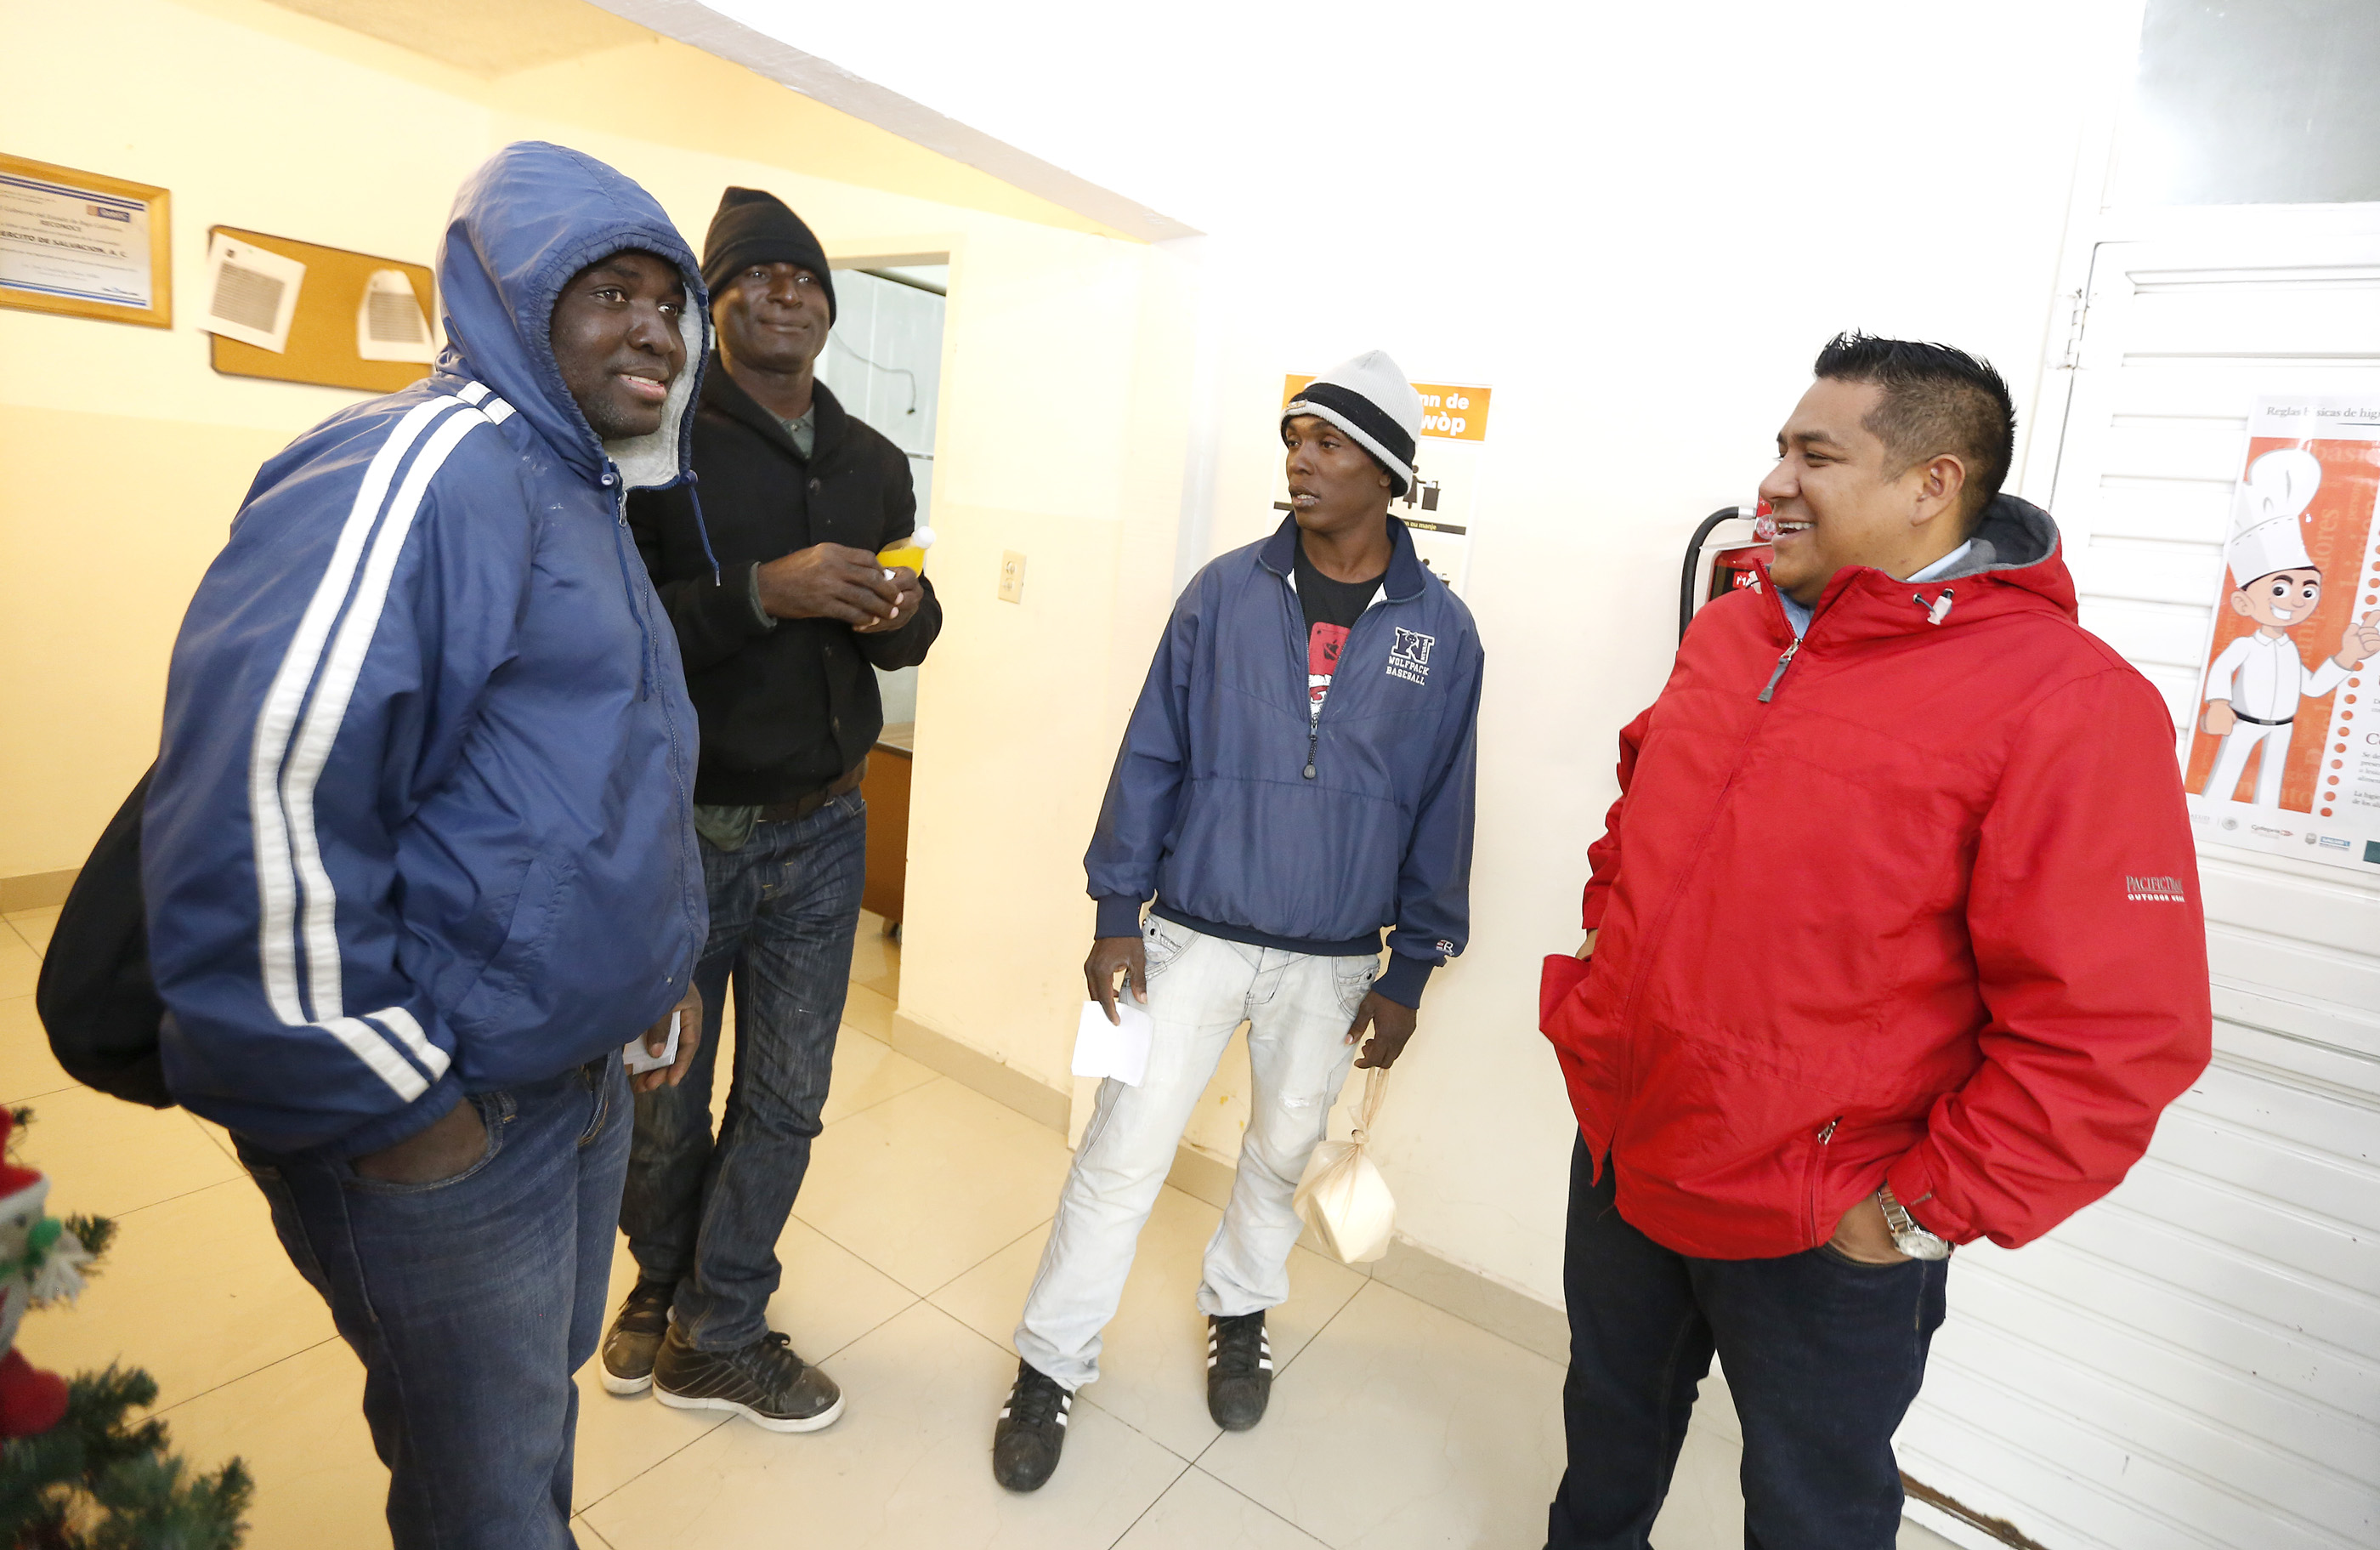 12/08/16/ TIJUANA/Capt. Isaac Olvera (R), Salvation Army in Tijuana, speaks to a group of Haitian refugees at the shelter. An unprecedented arrival of Haitians and others seeking entry into the United States in recent weeks has sent Tijuanas migrant shelters scrambling to find beds, blankets, food and other necessities to serve this increase of people awaiting processing by U.S. authorities. (Photo Aurelia Ventura/ La Opinion)